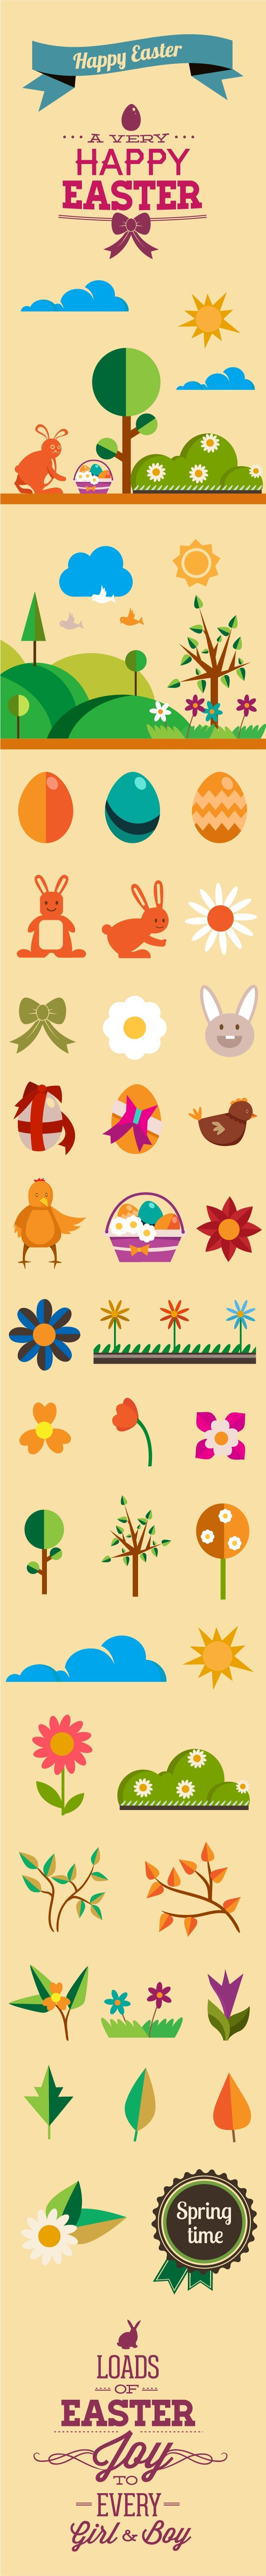 spring-flat-vector-elements-large